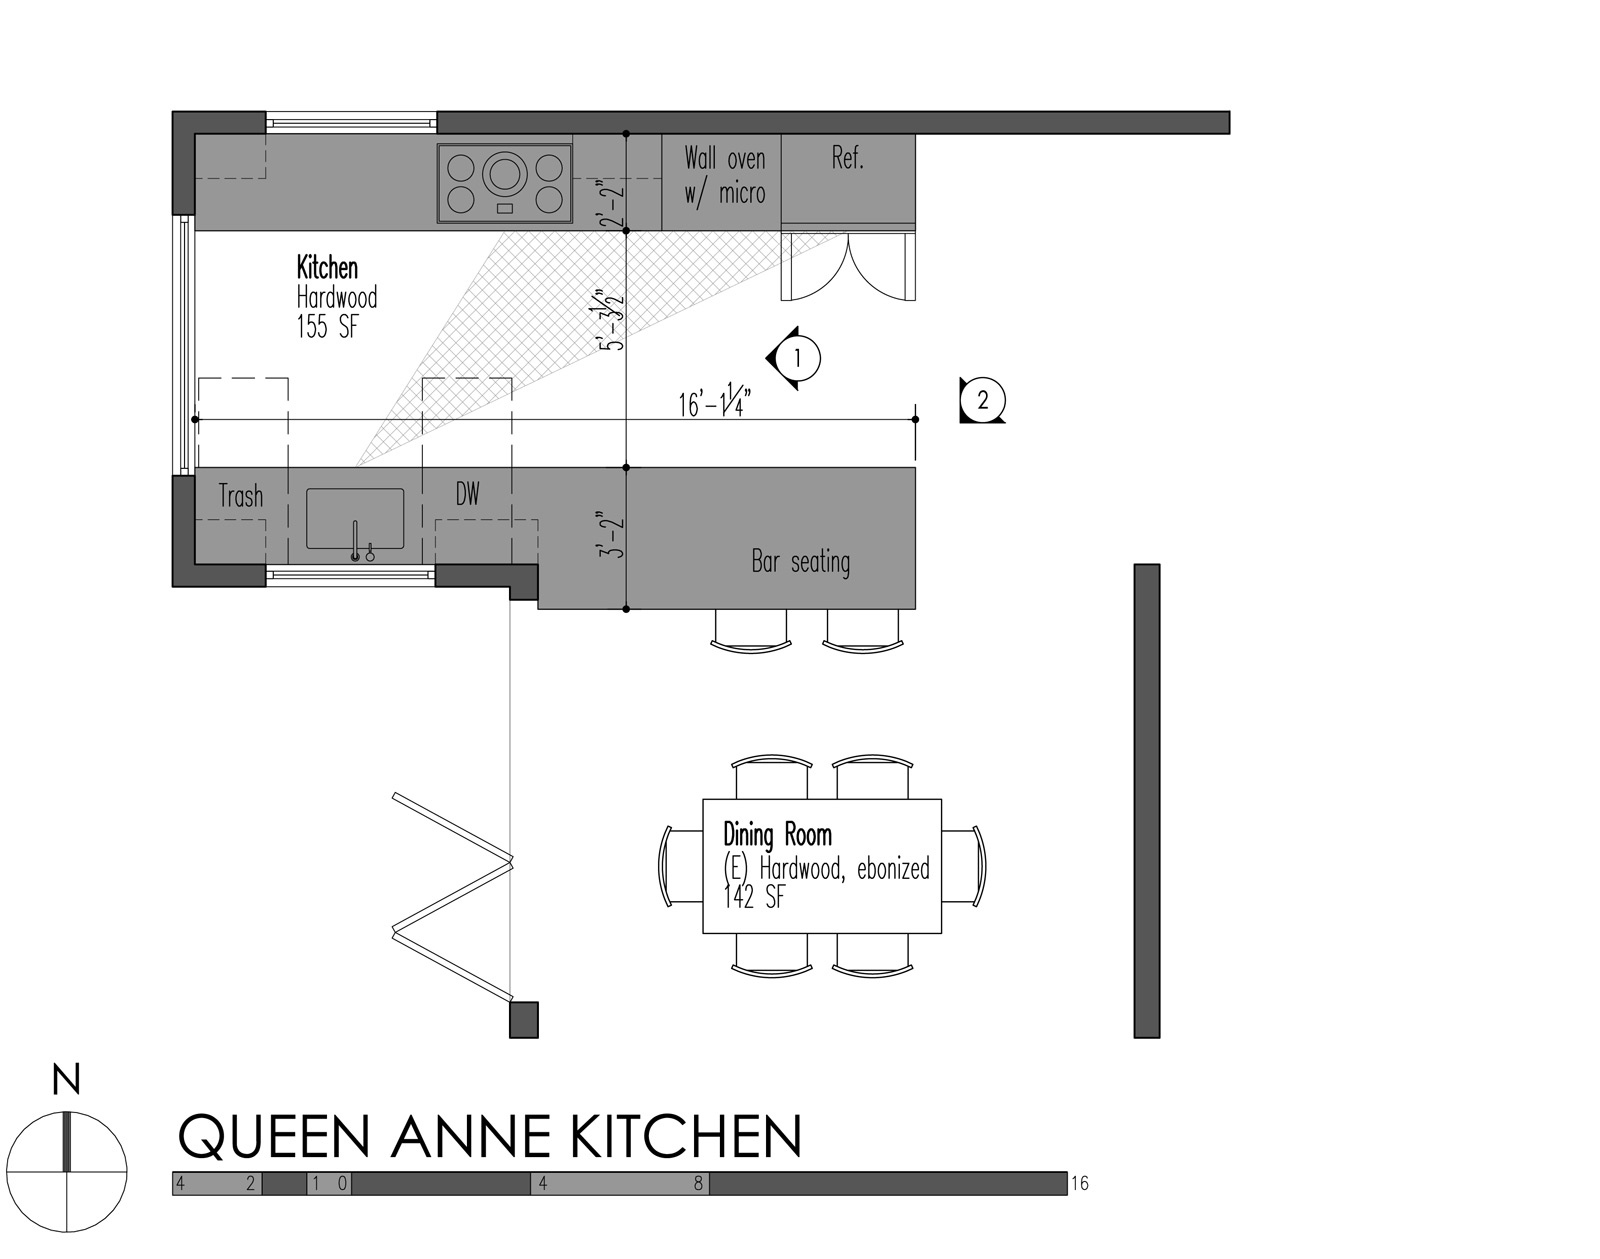 Uncategorized Triangle Kitchen Design 5 modern kitchen designs principles build blog llc queen anne plan